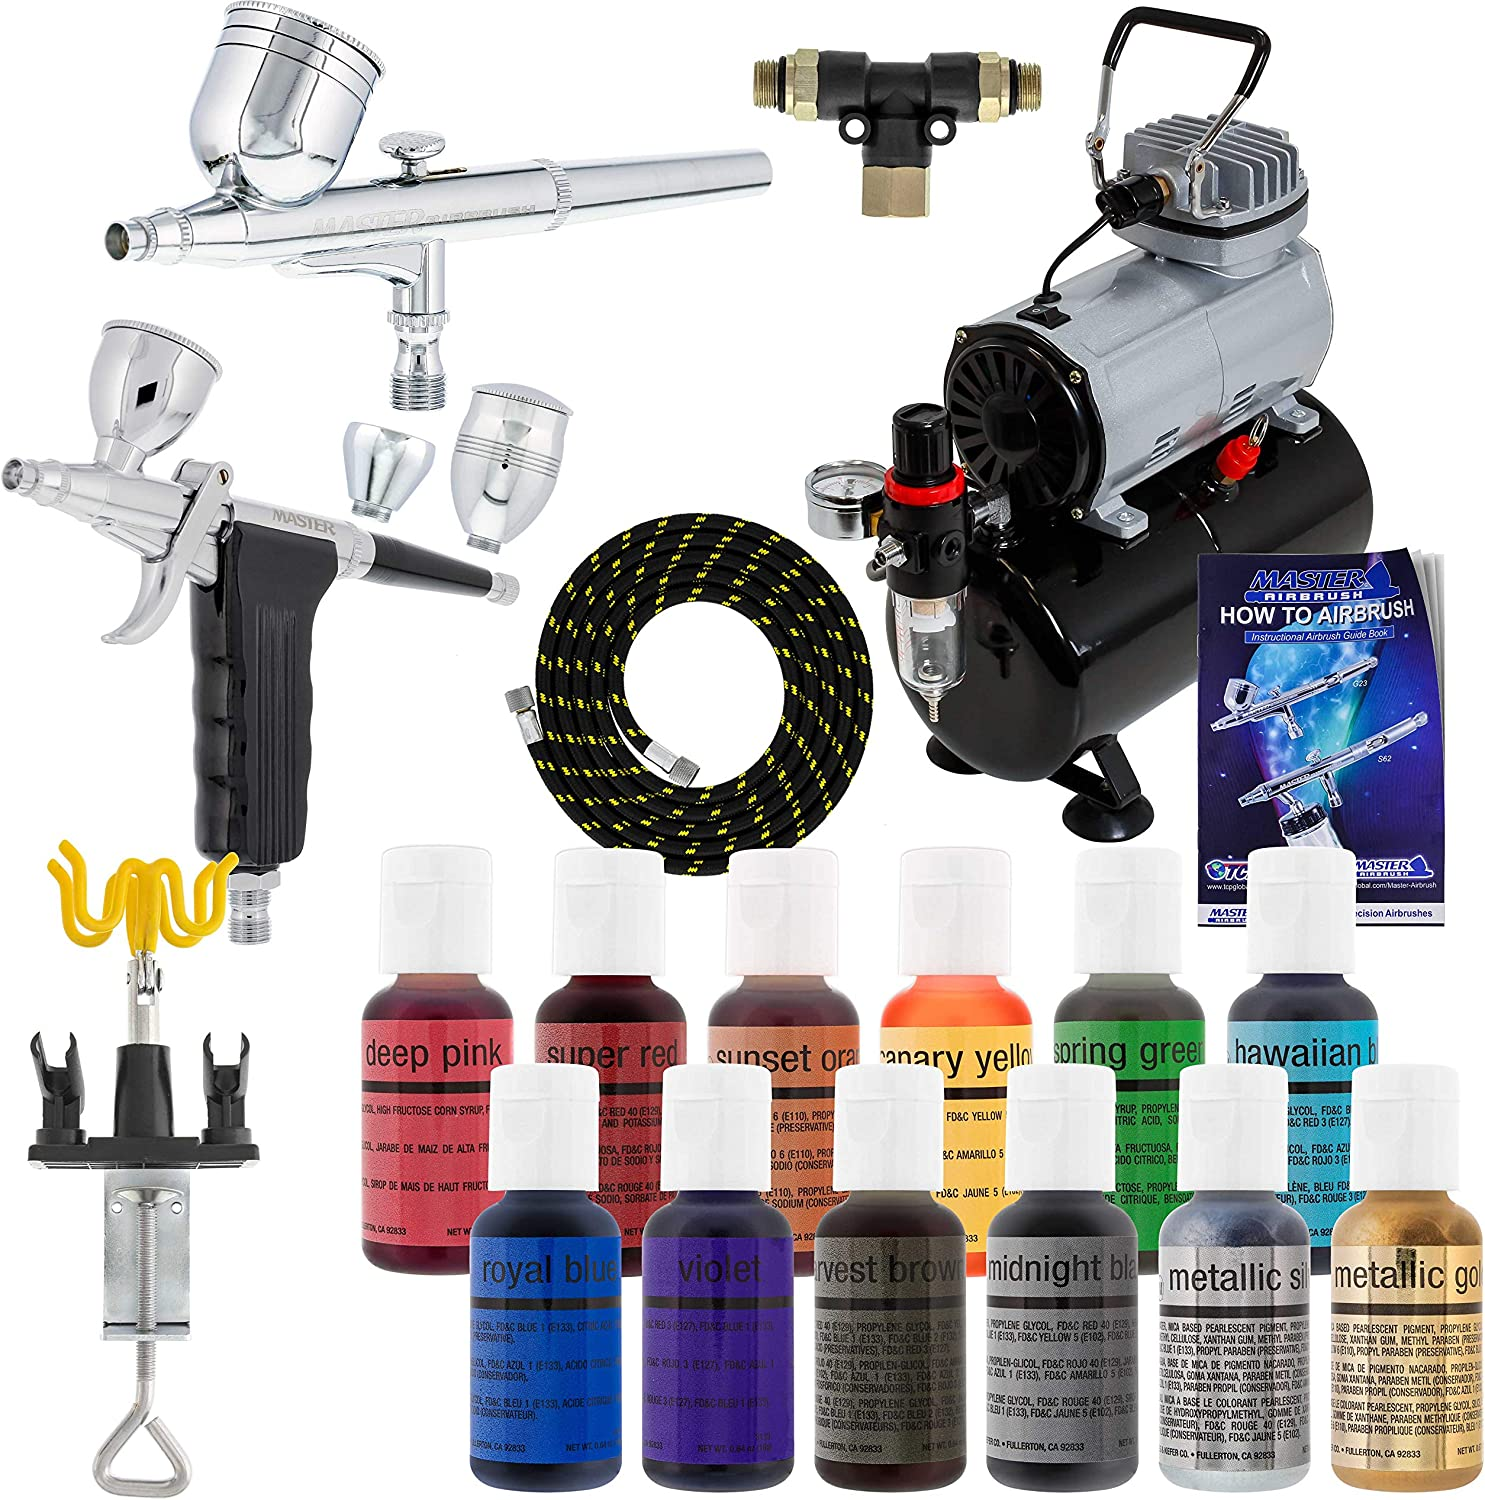 Master Airbrush Cake Decorating Airbrushing System Kit with 12 Color Chefmaster Food Coloring Set - G22 Gravity Feed, G76 Trigger 3 Cup Airbrush, Compressor with Air Tank, Holder, Guide Booklet